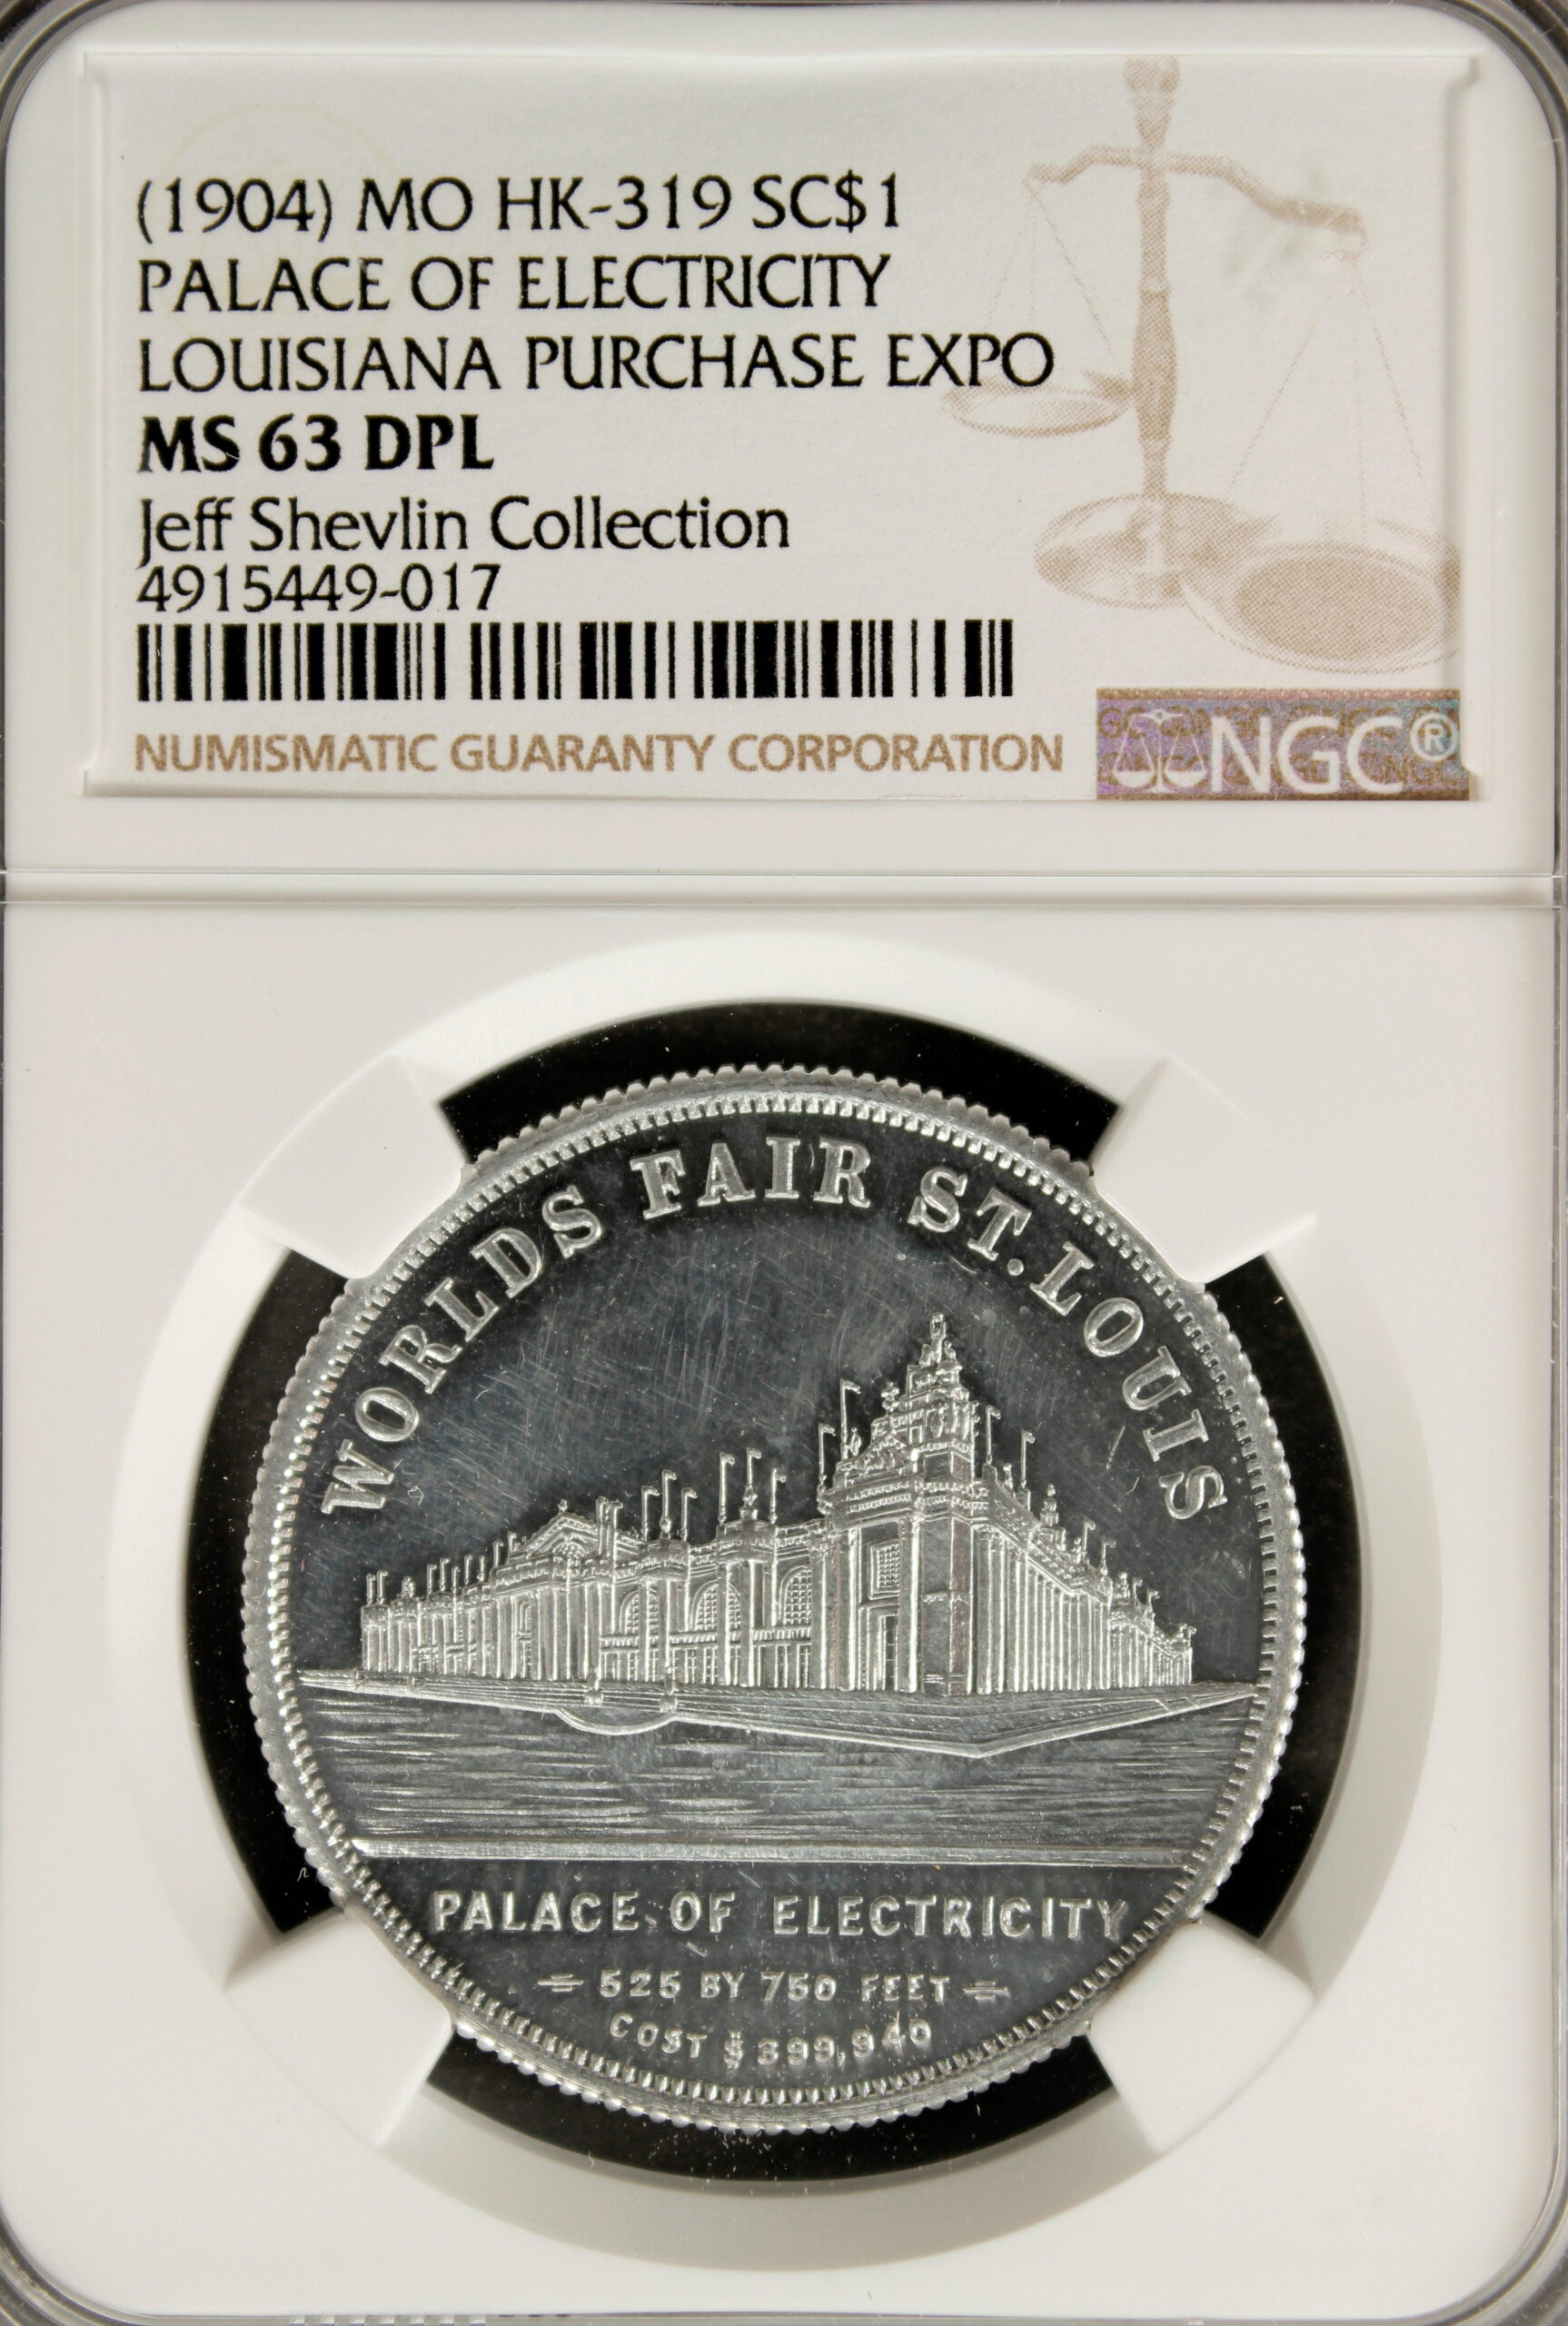 HK-319 Louisiana Purchase Schwaab Electricity / Fraternity SCD